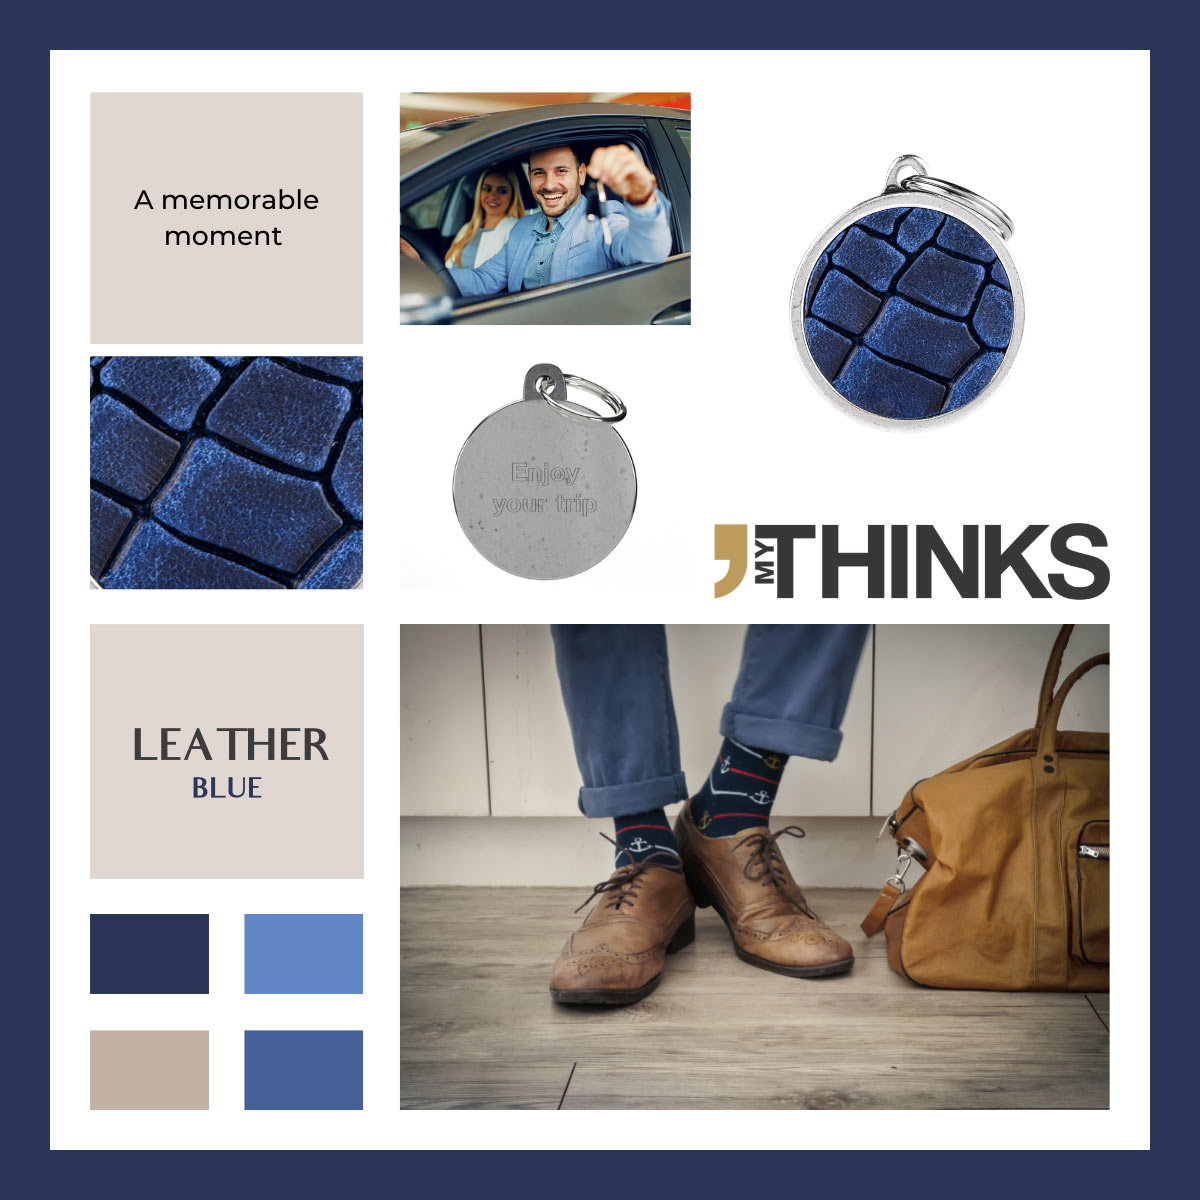 Mood board Leather collection gifts with blue leather tag personalized for the luggage and automotive market